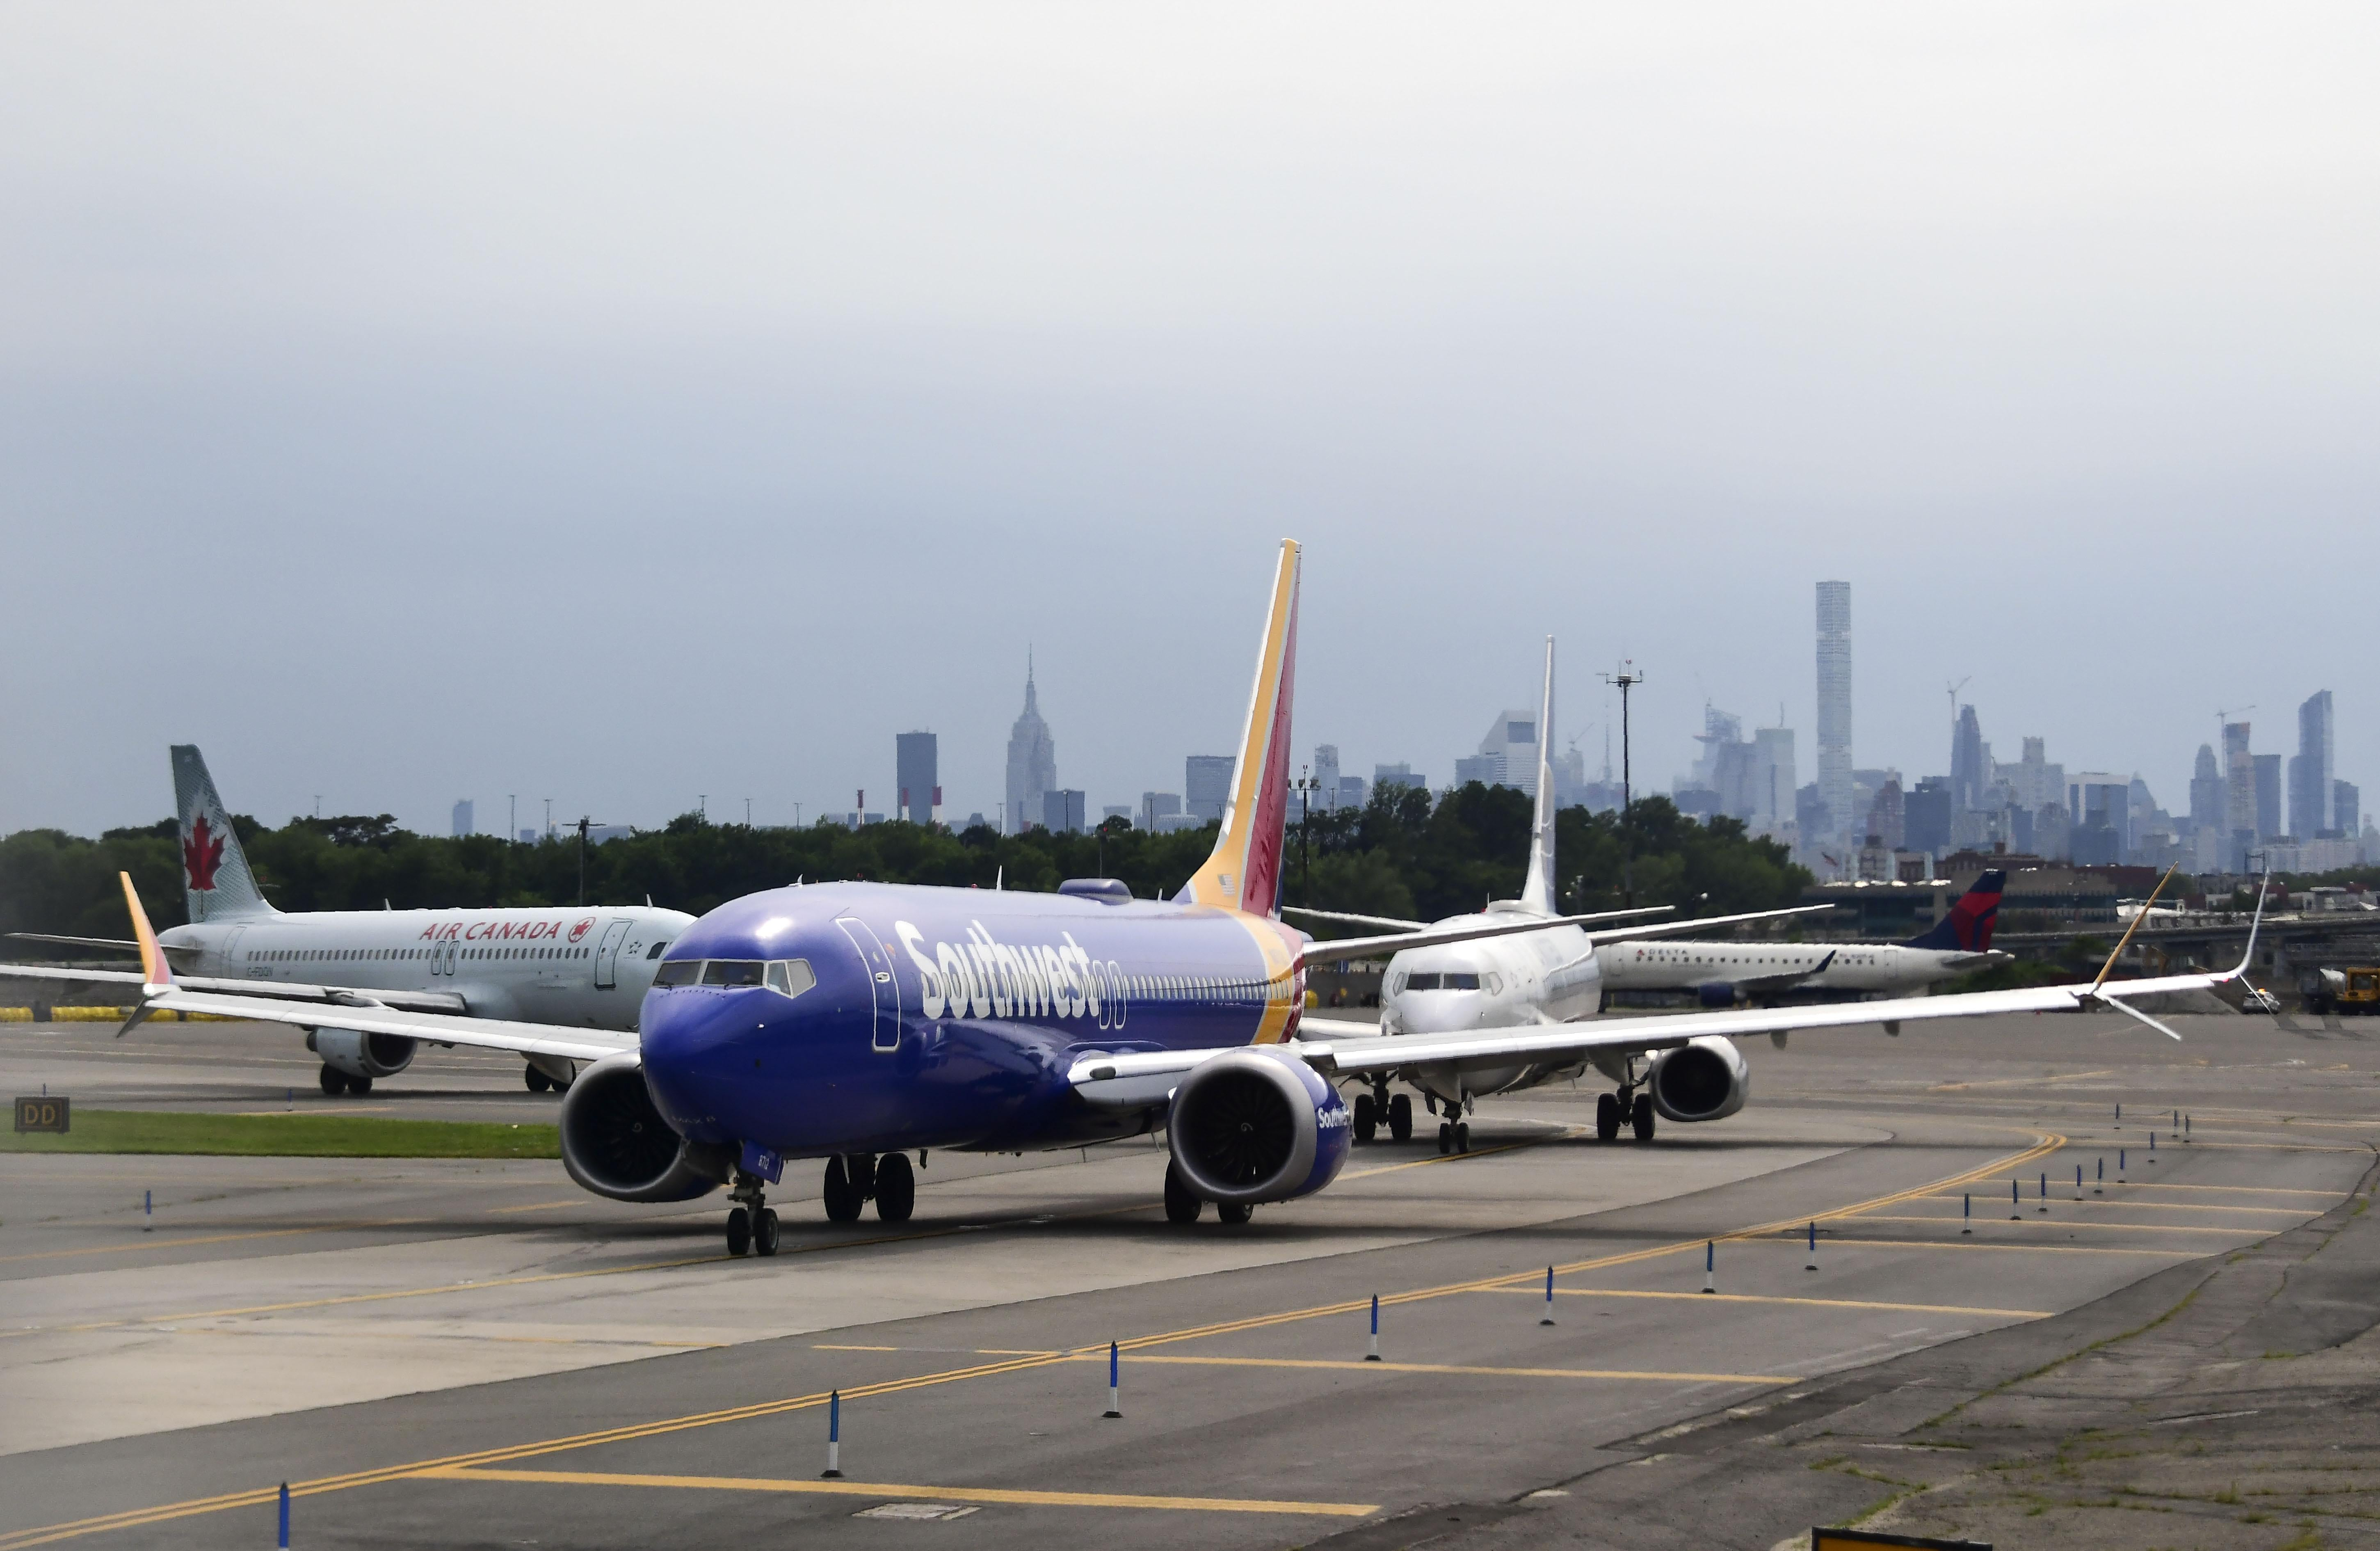 A Southwest Airlines plane lines up with other aircraft on the tarmac